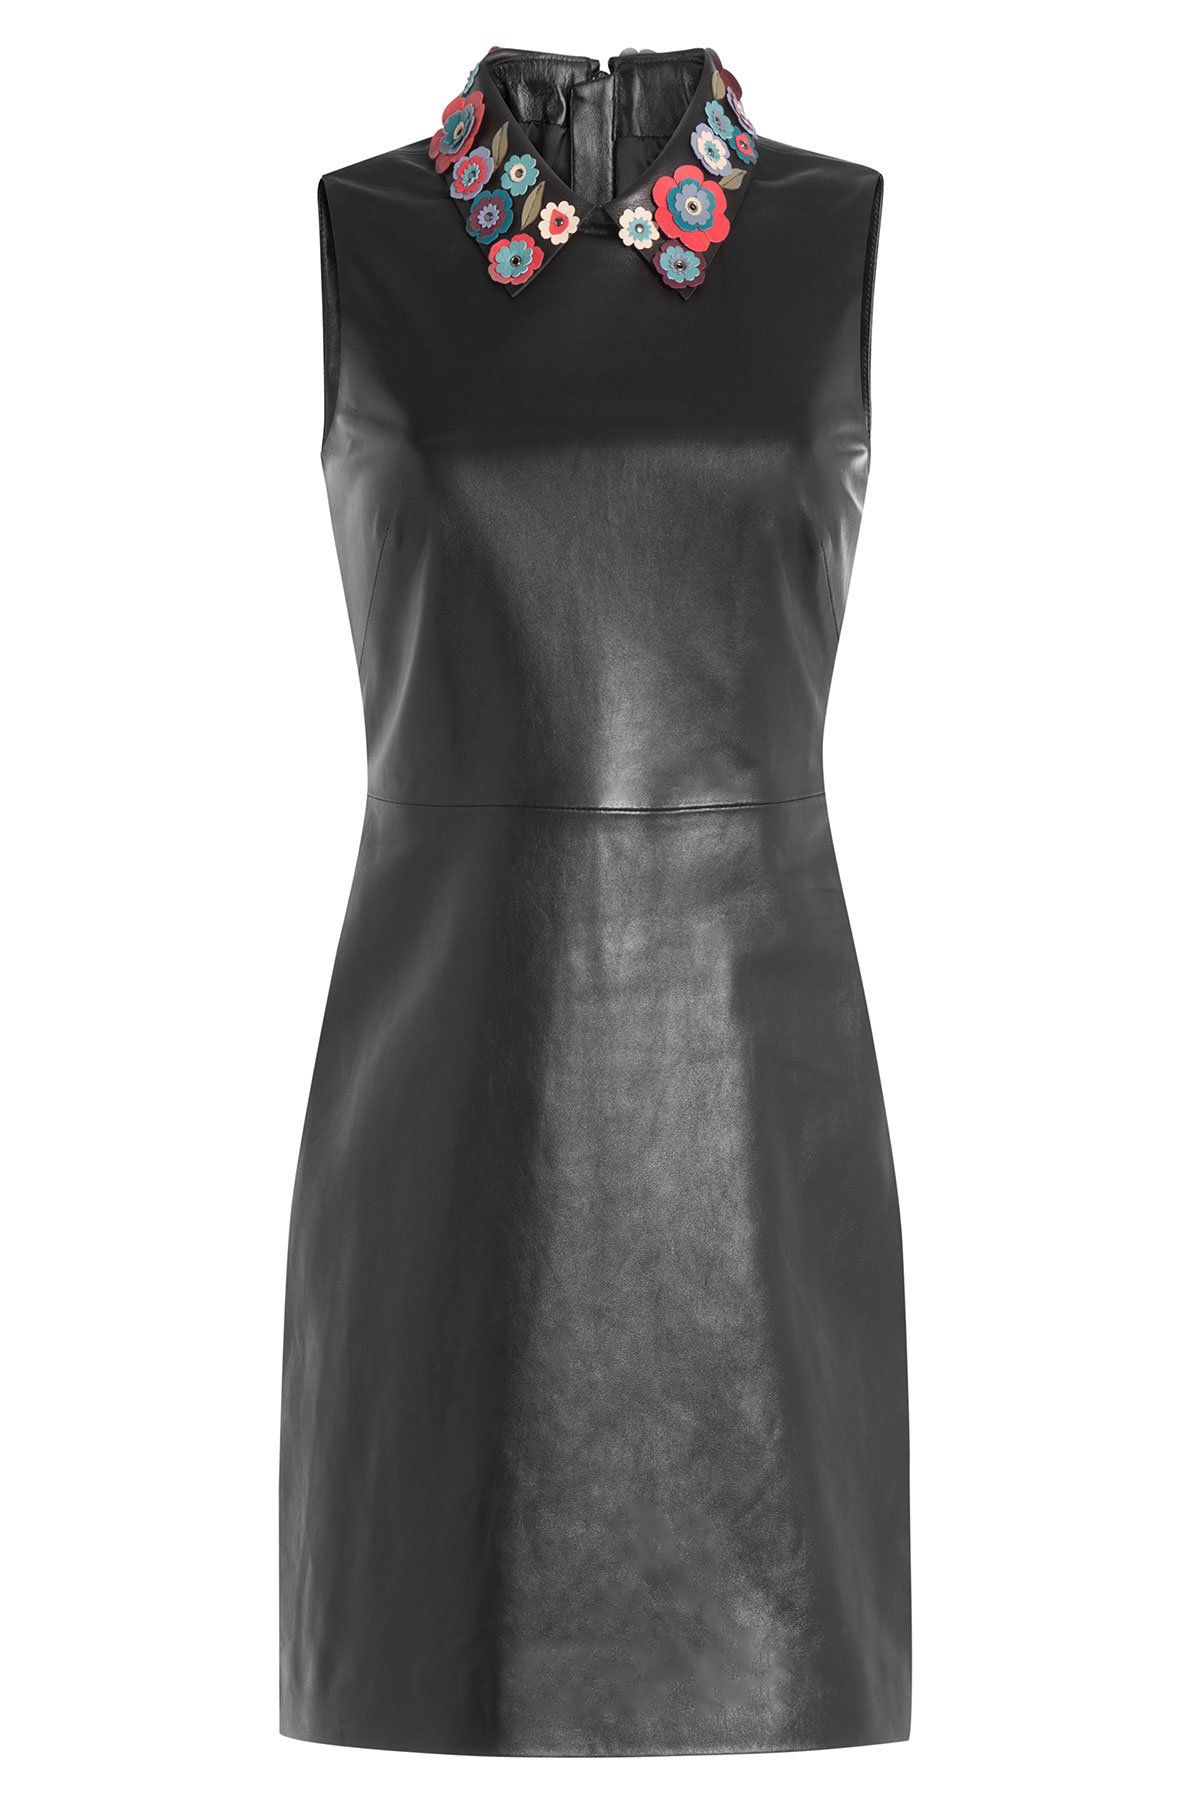 Excellent Cheap Online Rockstud seam mini dress - Blue Valentino Cheap Ebay Browse For Sale Pick A Best For Sale 3HKw3